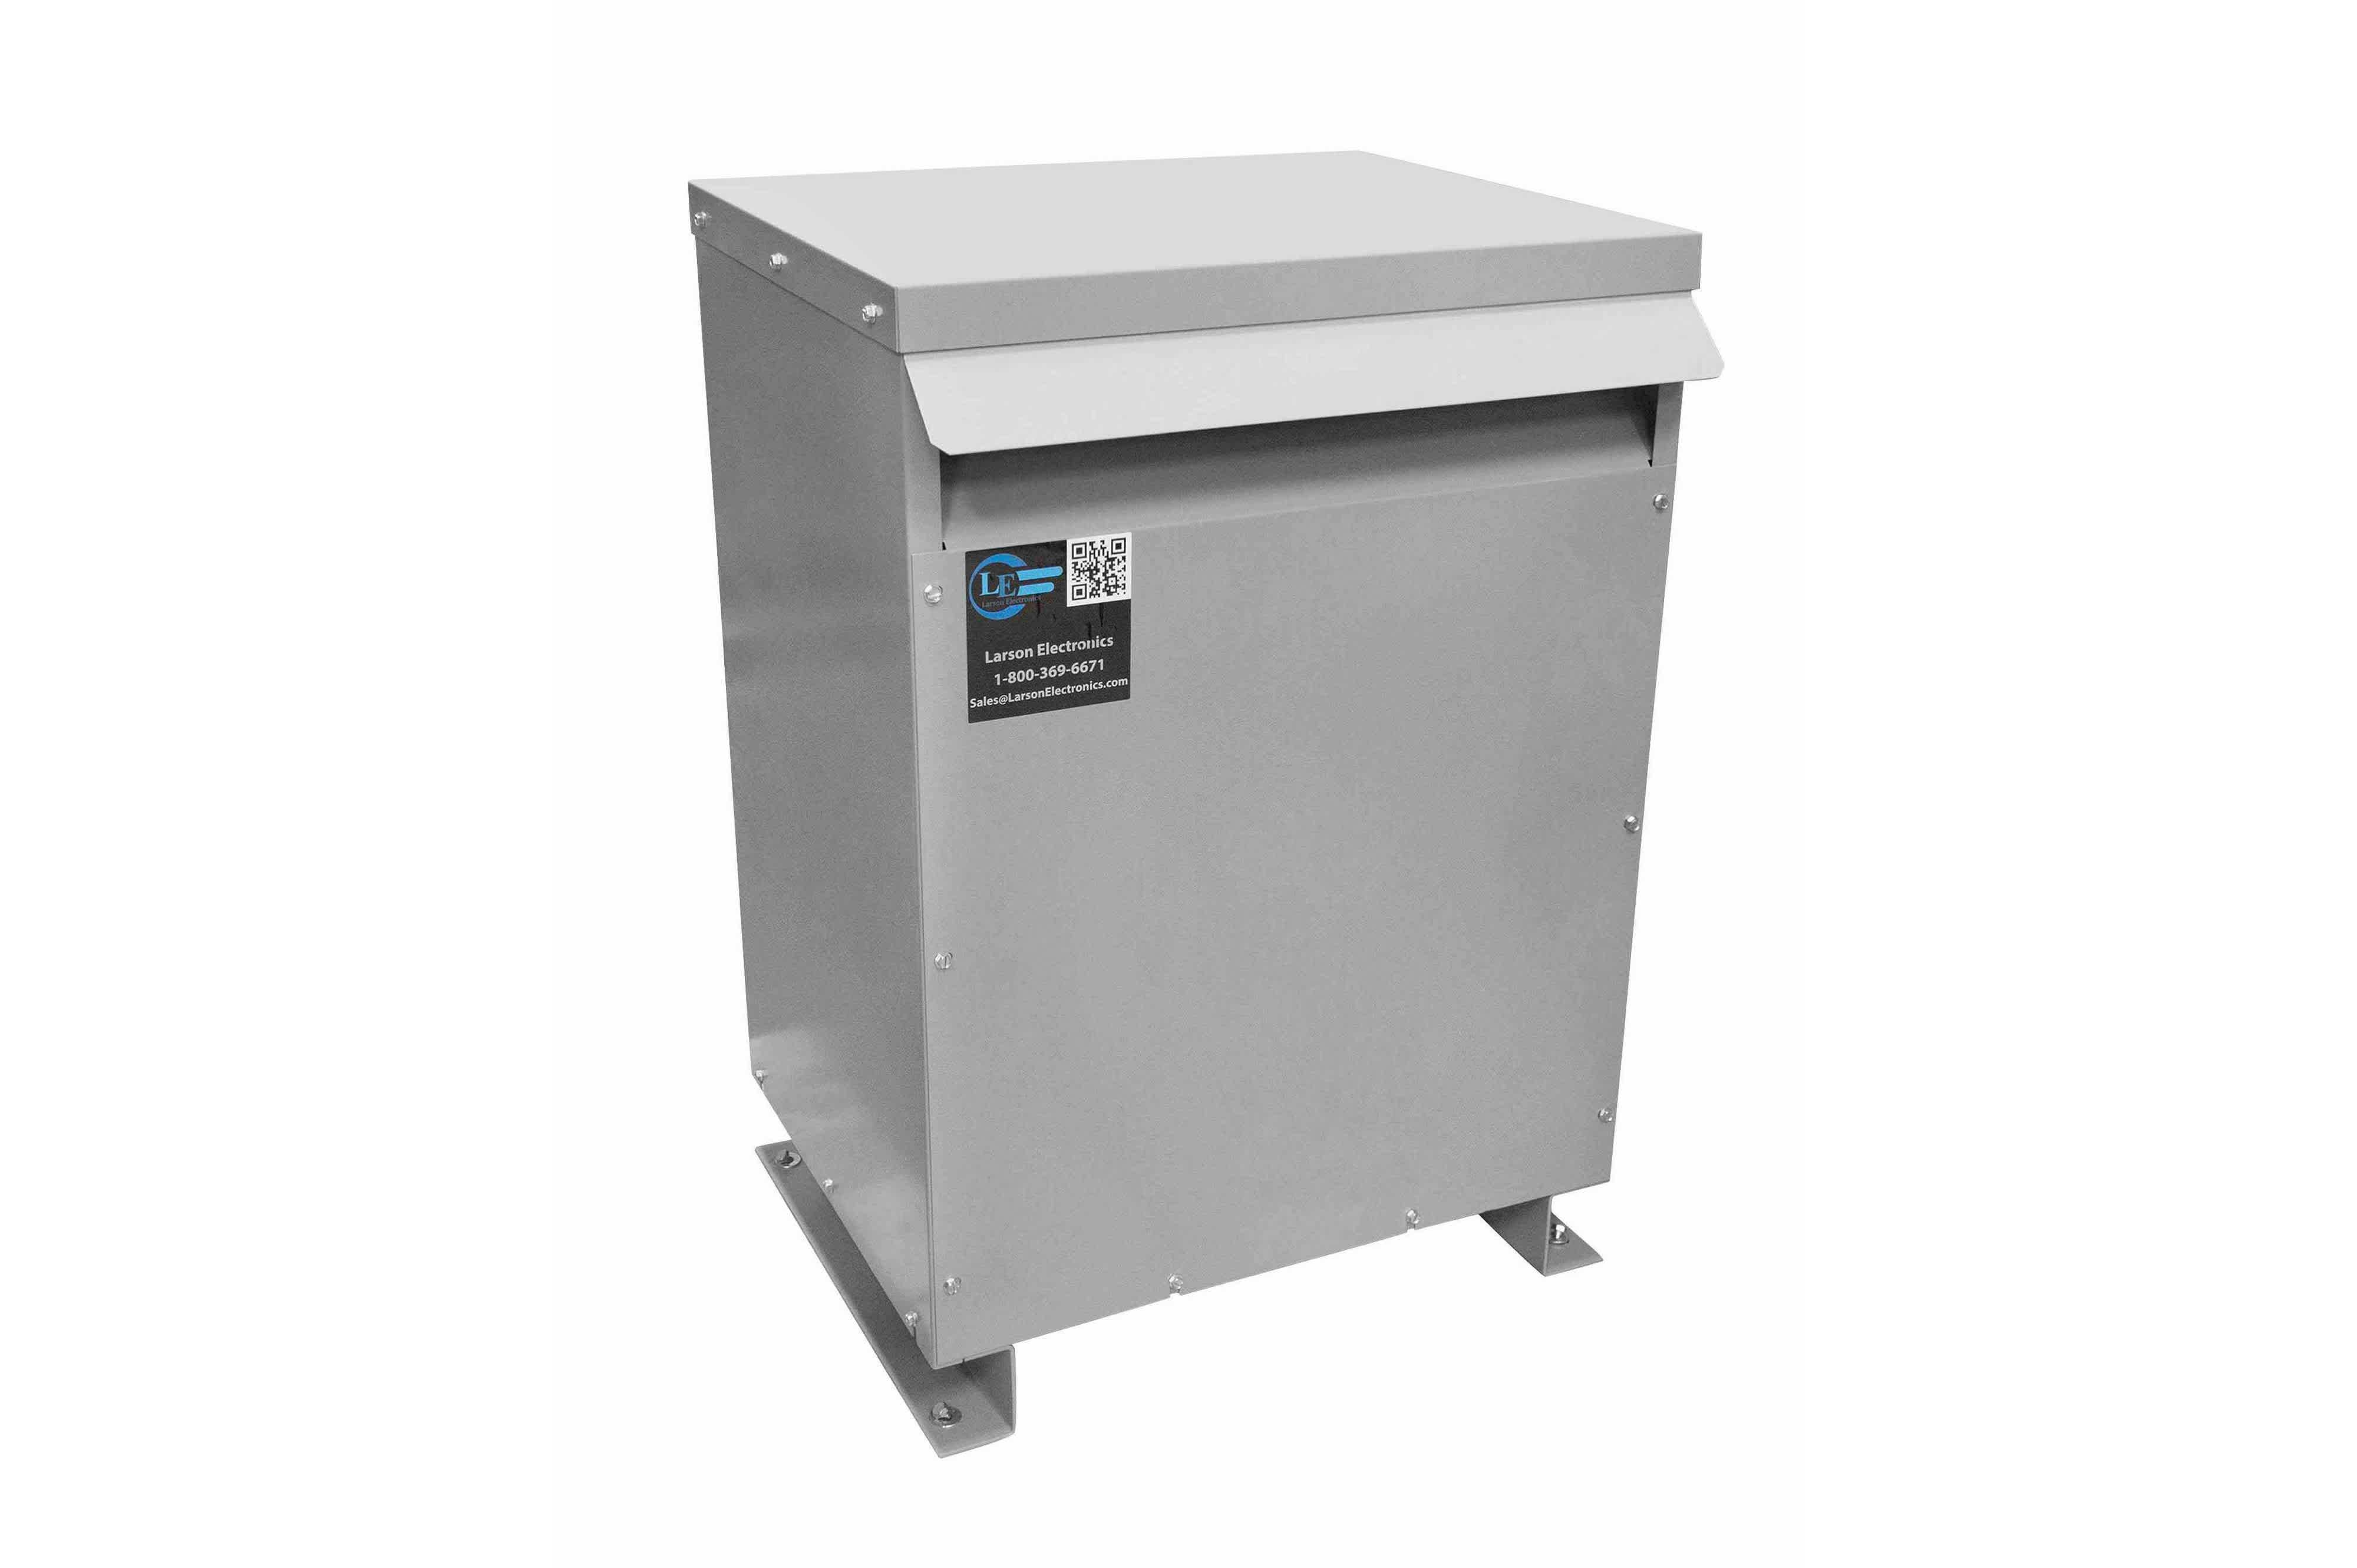 28 kVA 3PH Isolation Transformer, 460V Wye Primary, 415Y/240 Wye-N Secondary, N3R, Ventilated, 60 Hz